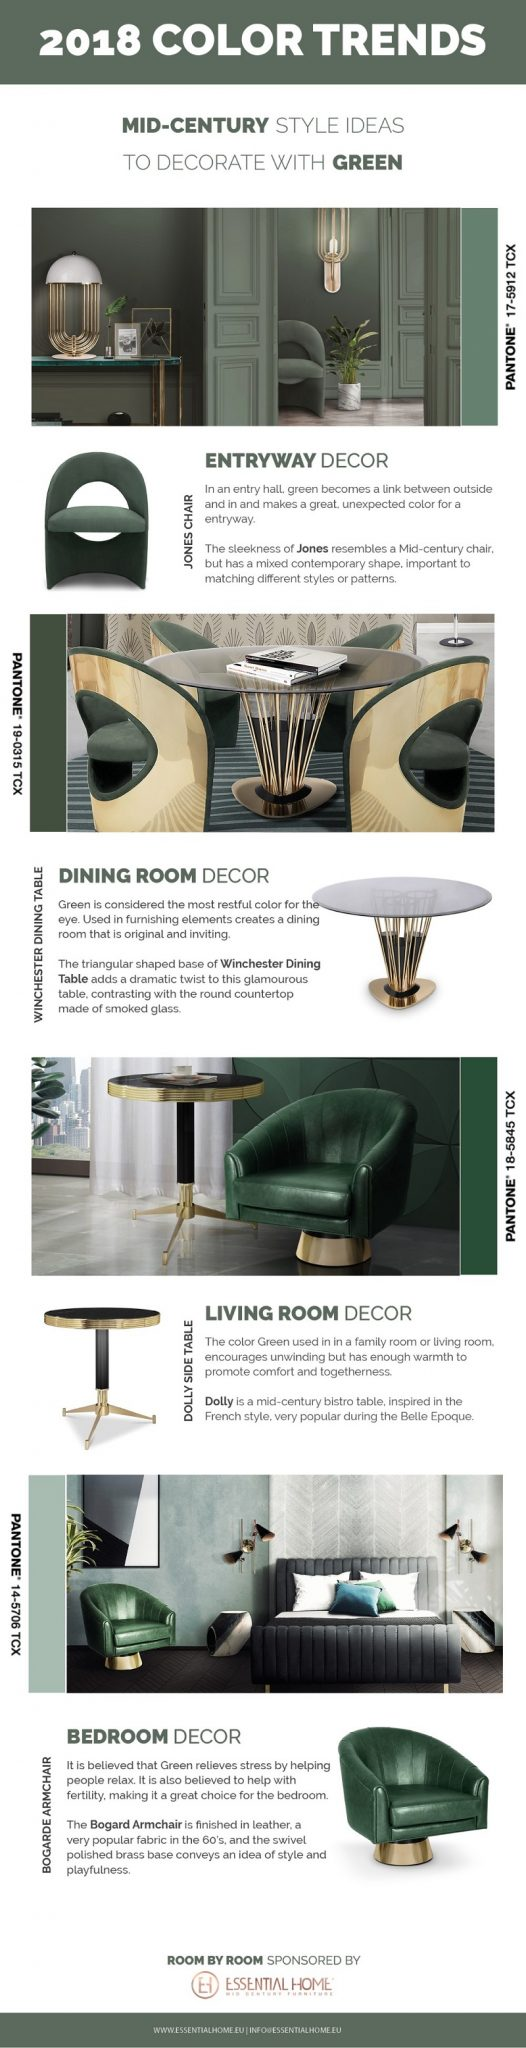 2018 color trends rocking a green decor in your mid century home info 2018 color trends rocking Home architecture trends 2018